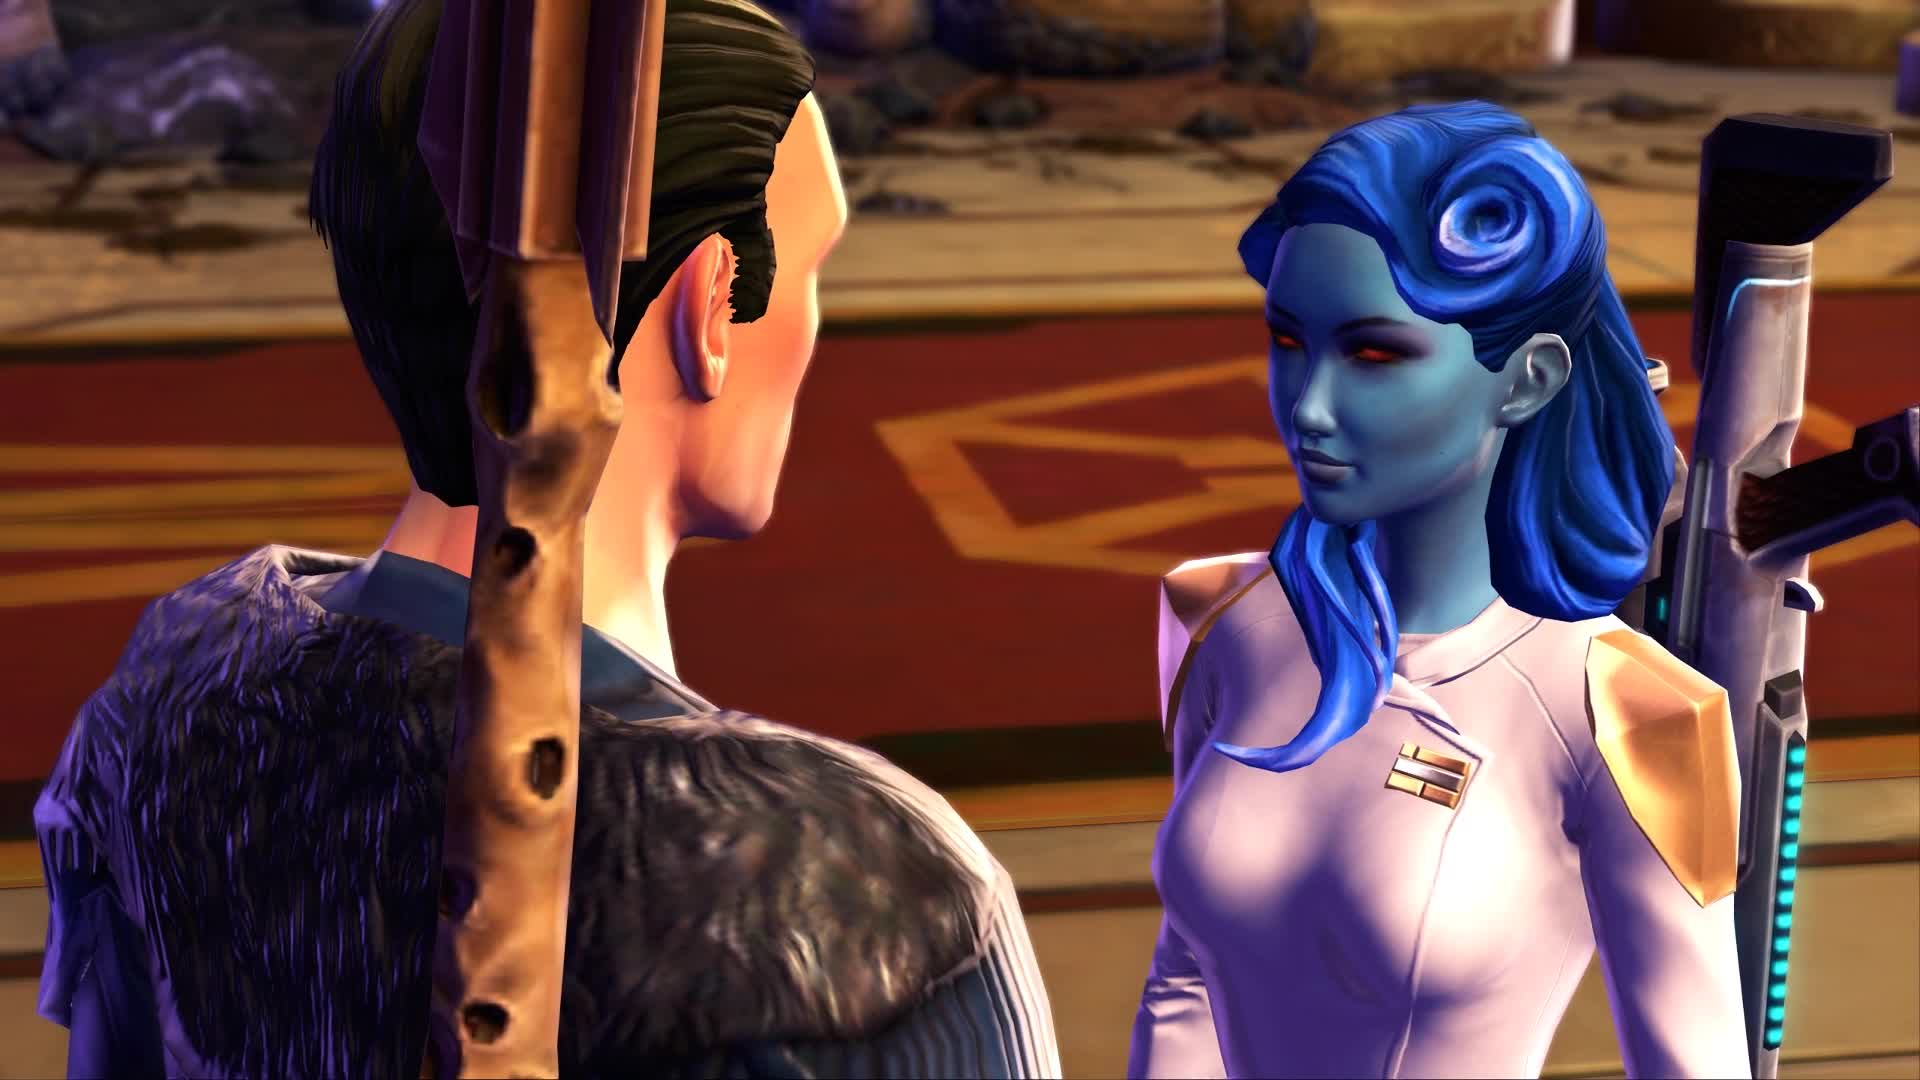 bioware, imperial agent, mmo, mmorpg, romance, star wars, star wars the old republic, swtor, the old republic, tor, vector hyllus, Vector Romance GIFs